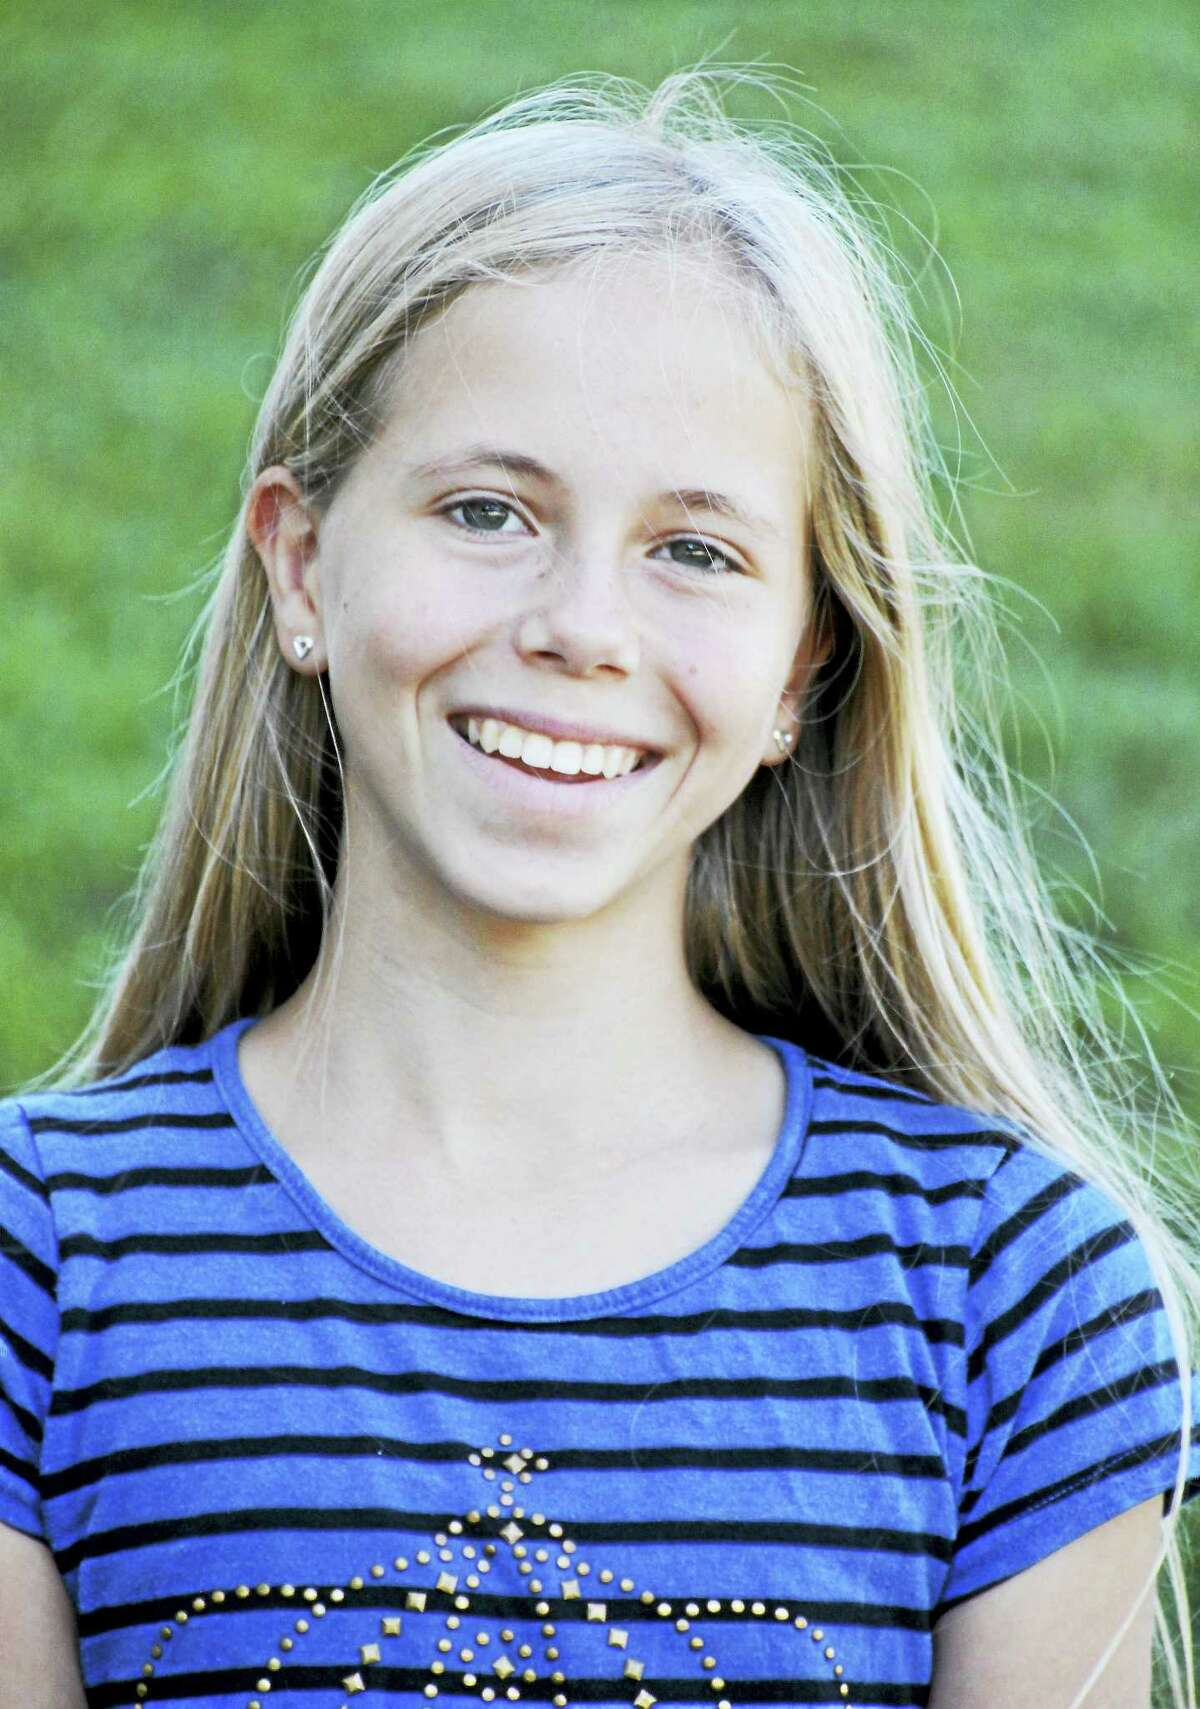 """Contributed photoMiddlefield, CT: Katie Gendrich of Middletown and a sixth grader at The Independent Day School in Middlefield has been notified by the National Geographic Society that is one of the semifinalists eligible to compete in the 2016 Connecticut National Geographic State Bee. The contest will be held on Friday, April 1, 2016. Katie said, """"I'm thrilled to be a participant. I've always had natural curiosity of places and countries and the world we live in.""""This is the second level of the National Geographic Bee competition, which is now in its 28th year. School Bees were held in schools with fourth through eighth grade students throughout the state to determine each school champion. School champions then took an online qualifying test."""